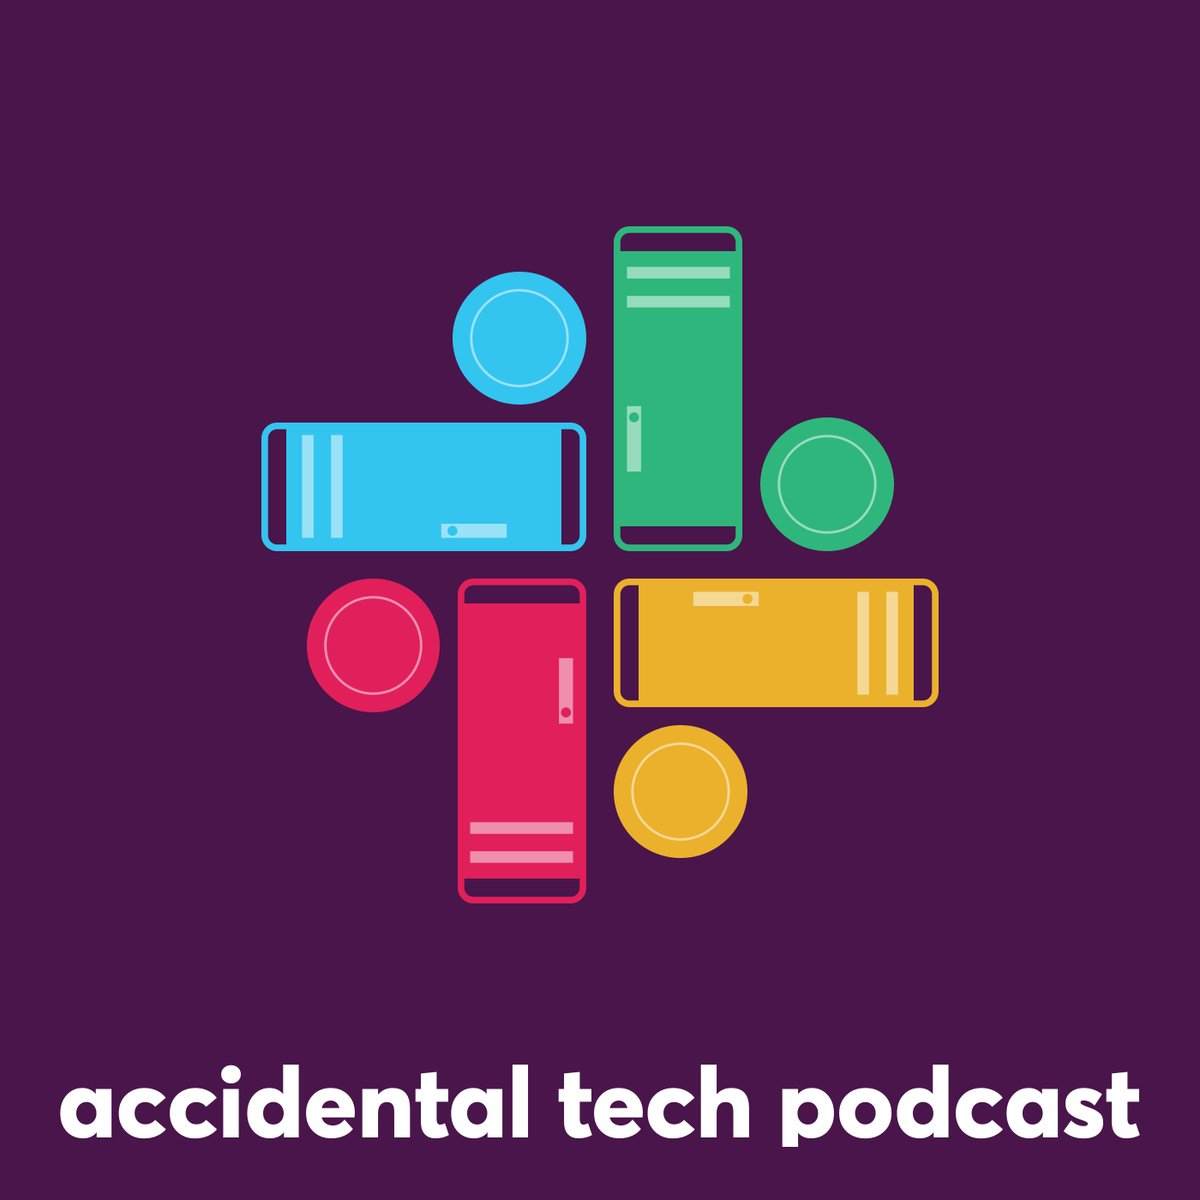 Accidental technical podcast